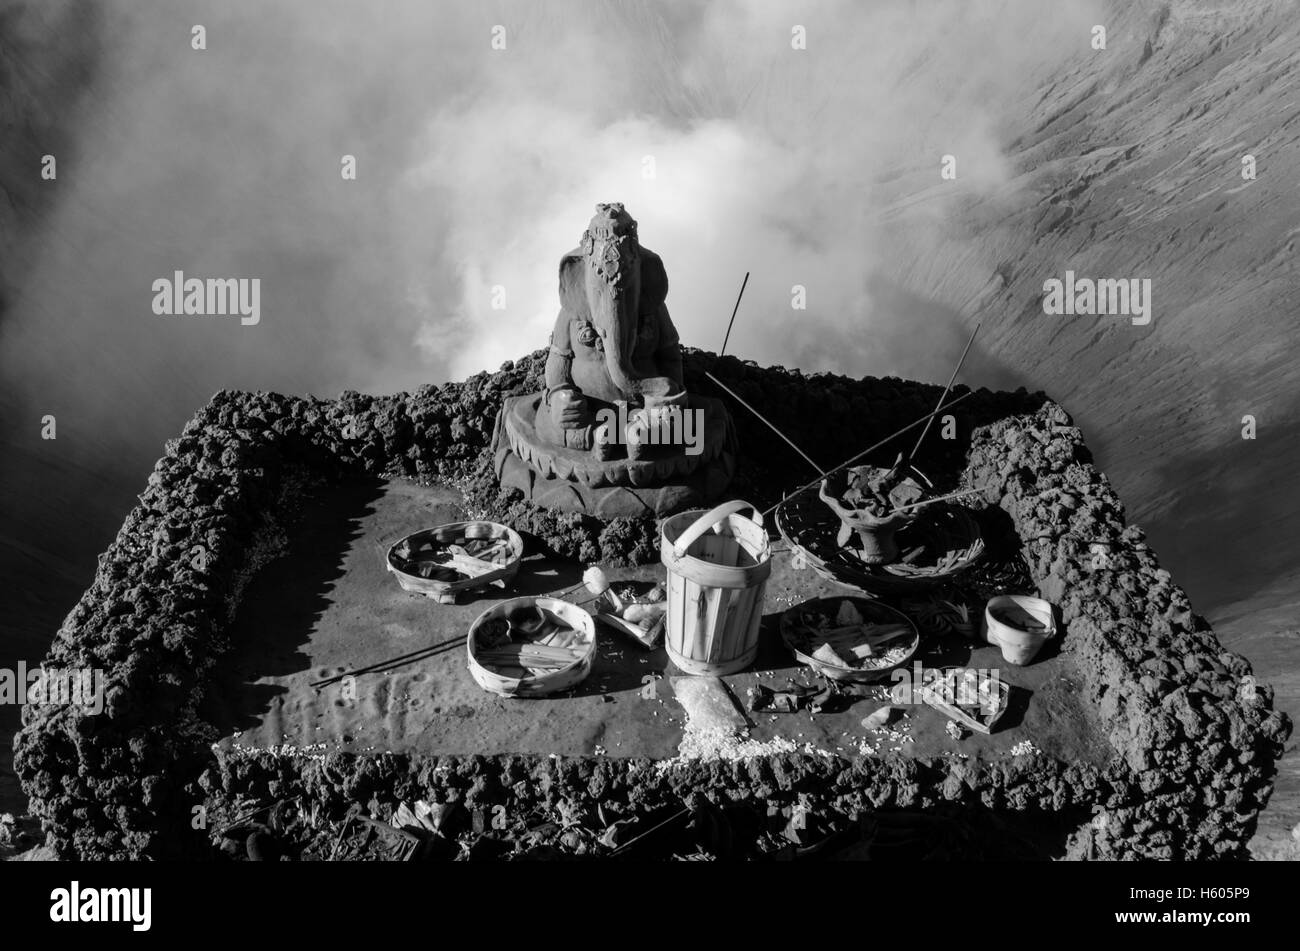 A religious shrine above the smoking volcano crater of Mount Bromo - Stock Image